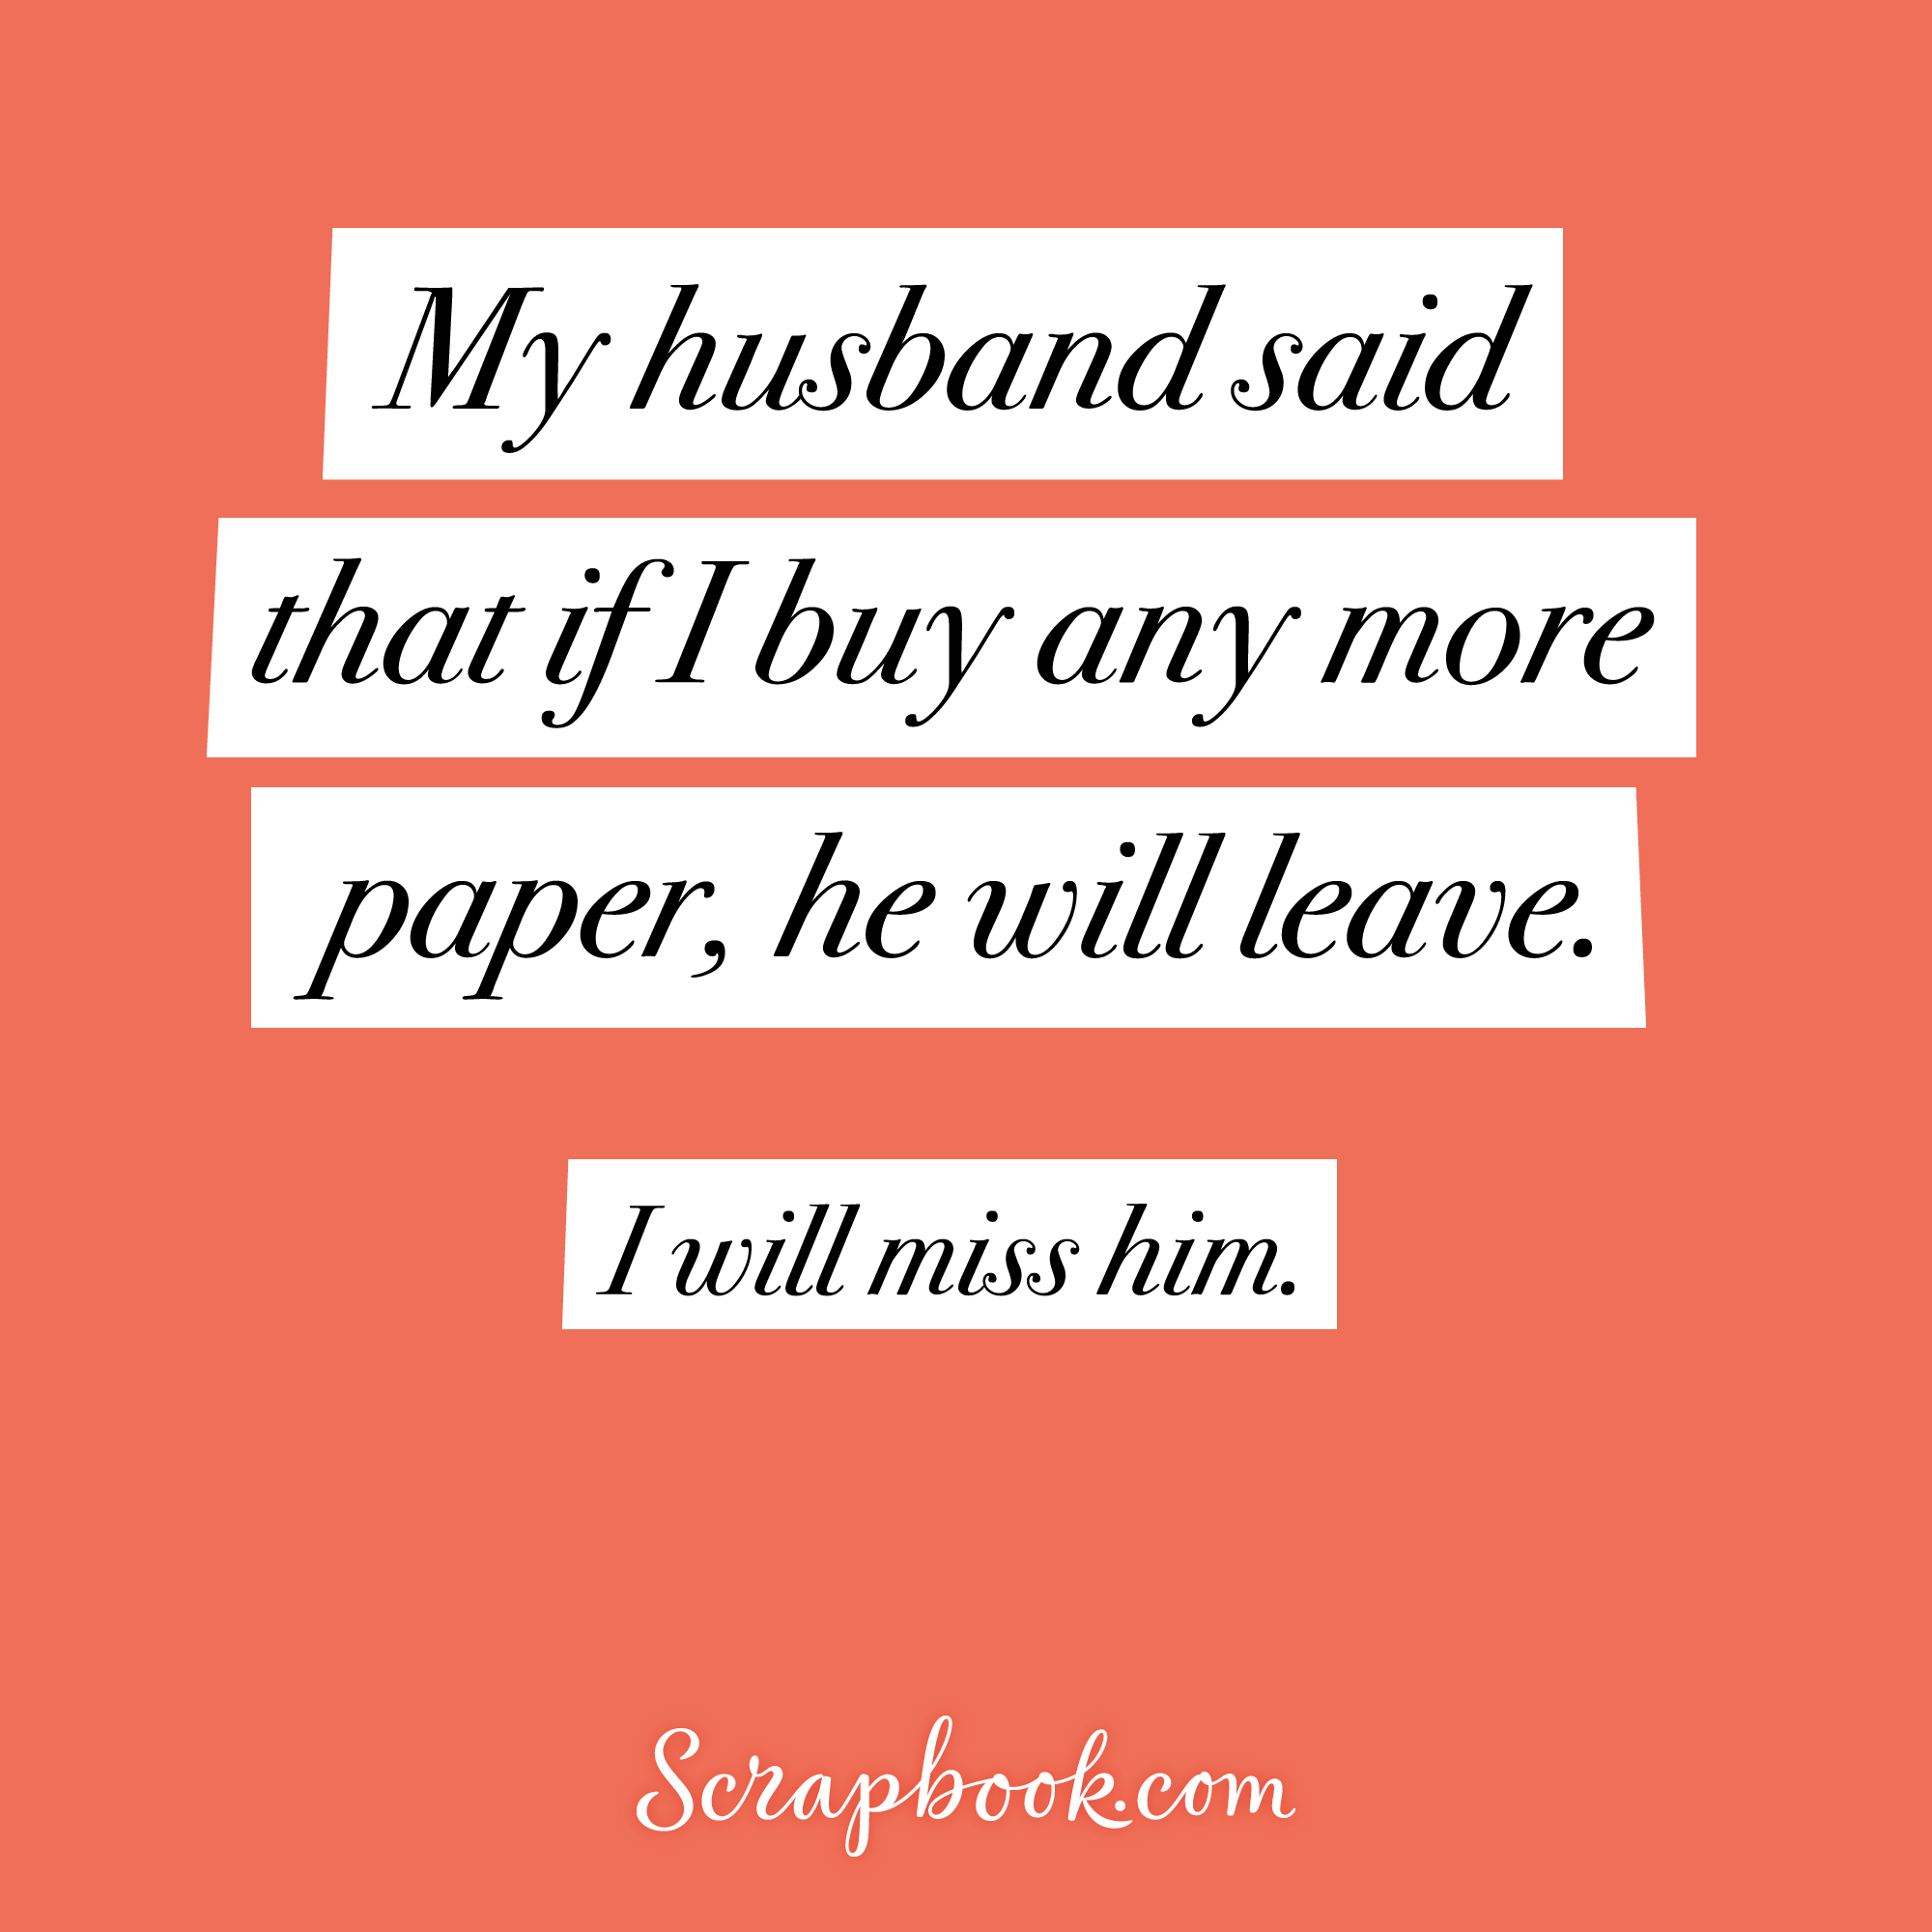 My husband said that if I buy any more paper, he will leave. I will miss him.